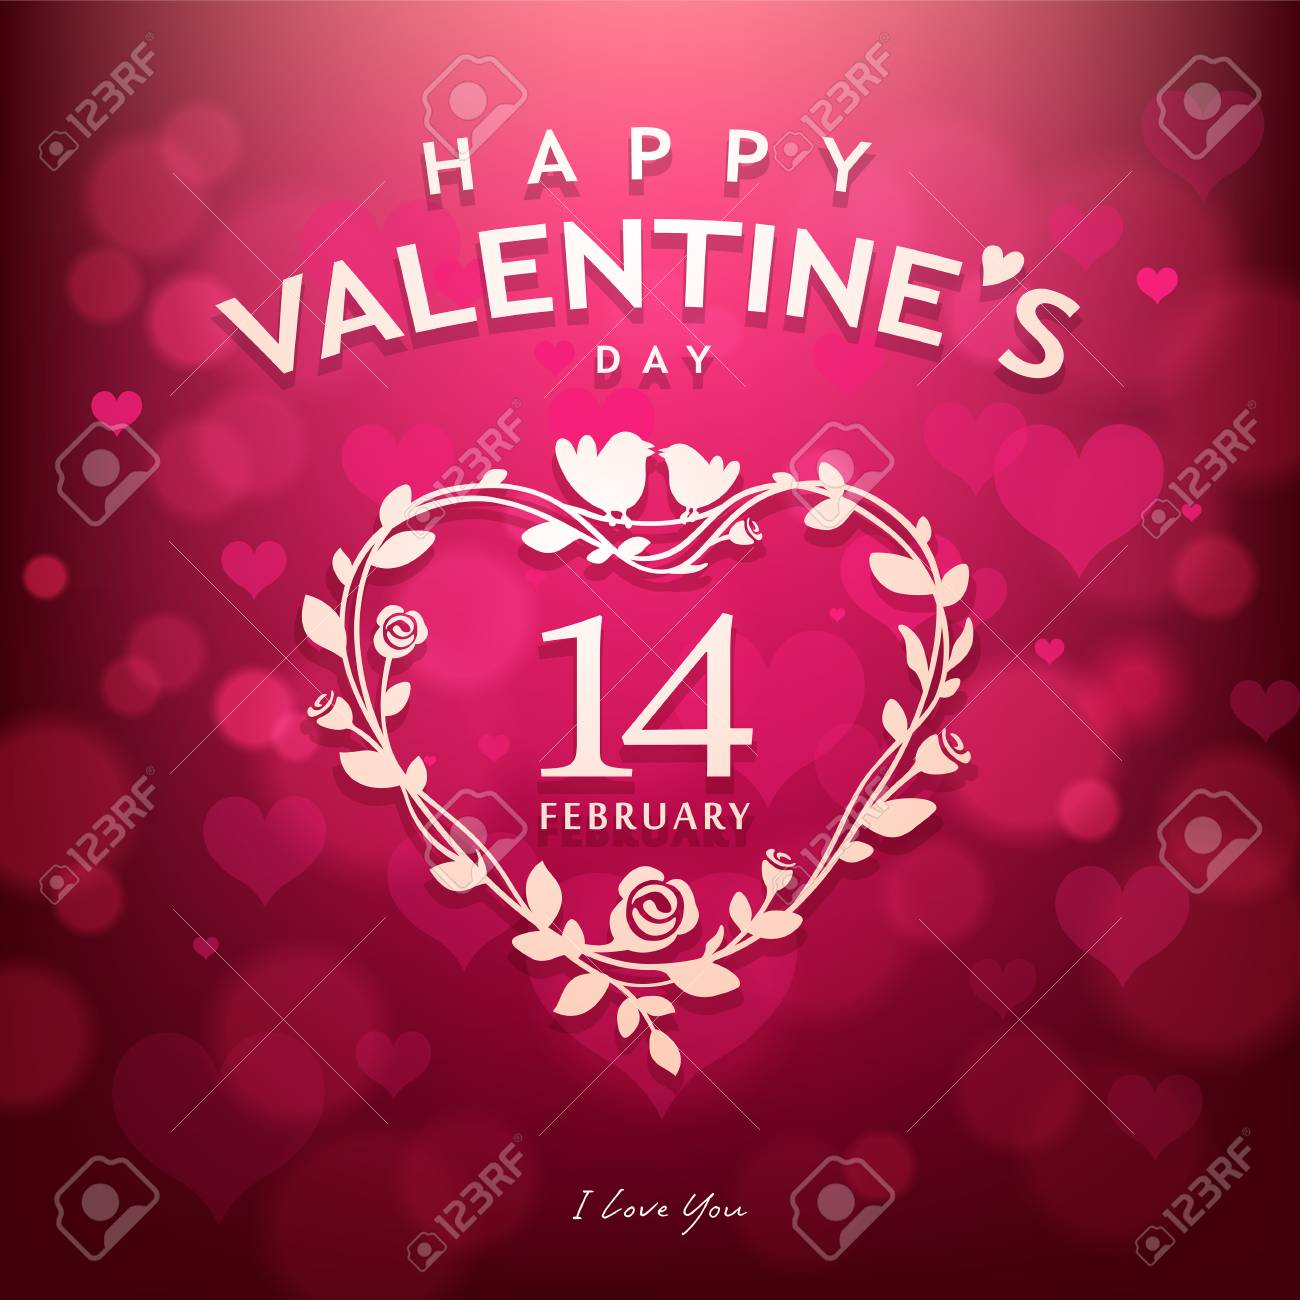 Happy Valentines Day Design Pink Background Royalty Free Cliparts